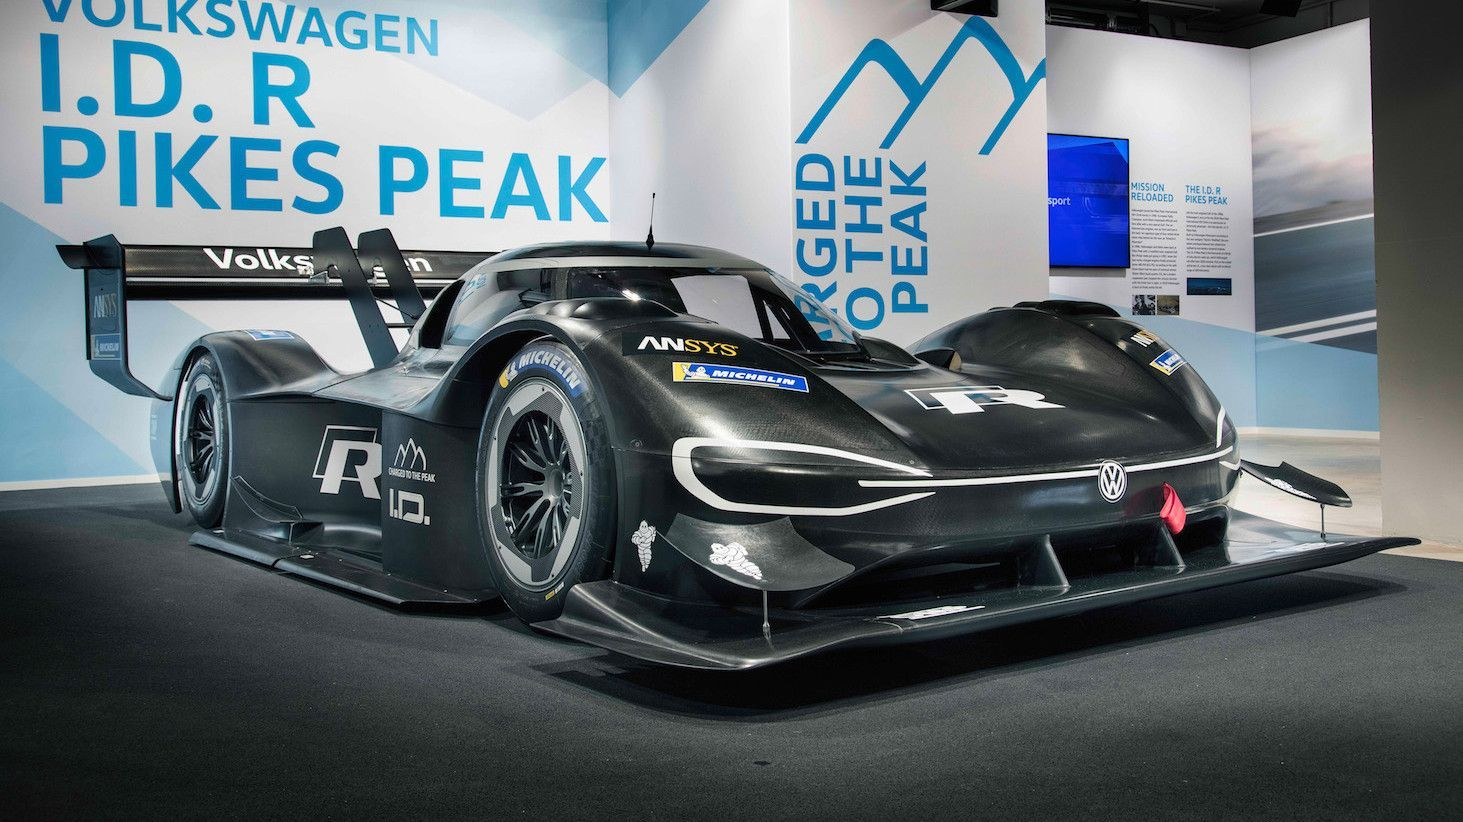 Volkswagen Uses 3dprinting For Pikes Peak Hill Climb Supercar Electric Race Car Set Pikes Peak Volkswagen